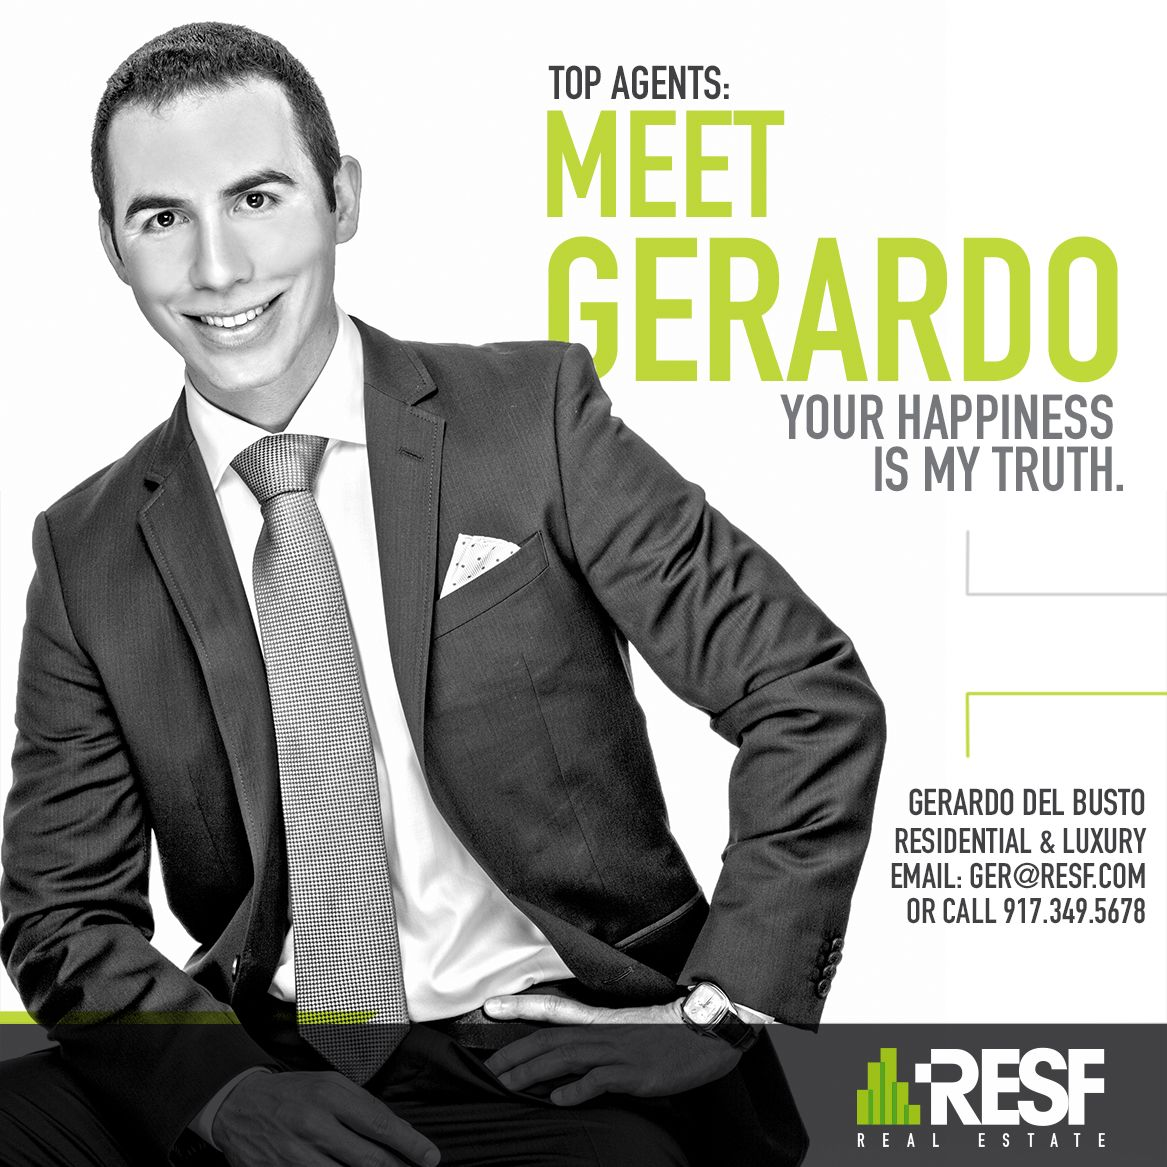 Meet top agent Gerardo del Busto, your happiness is my truth! Learn more about him: resf.com/gerardo-del-busto